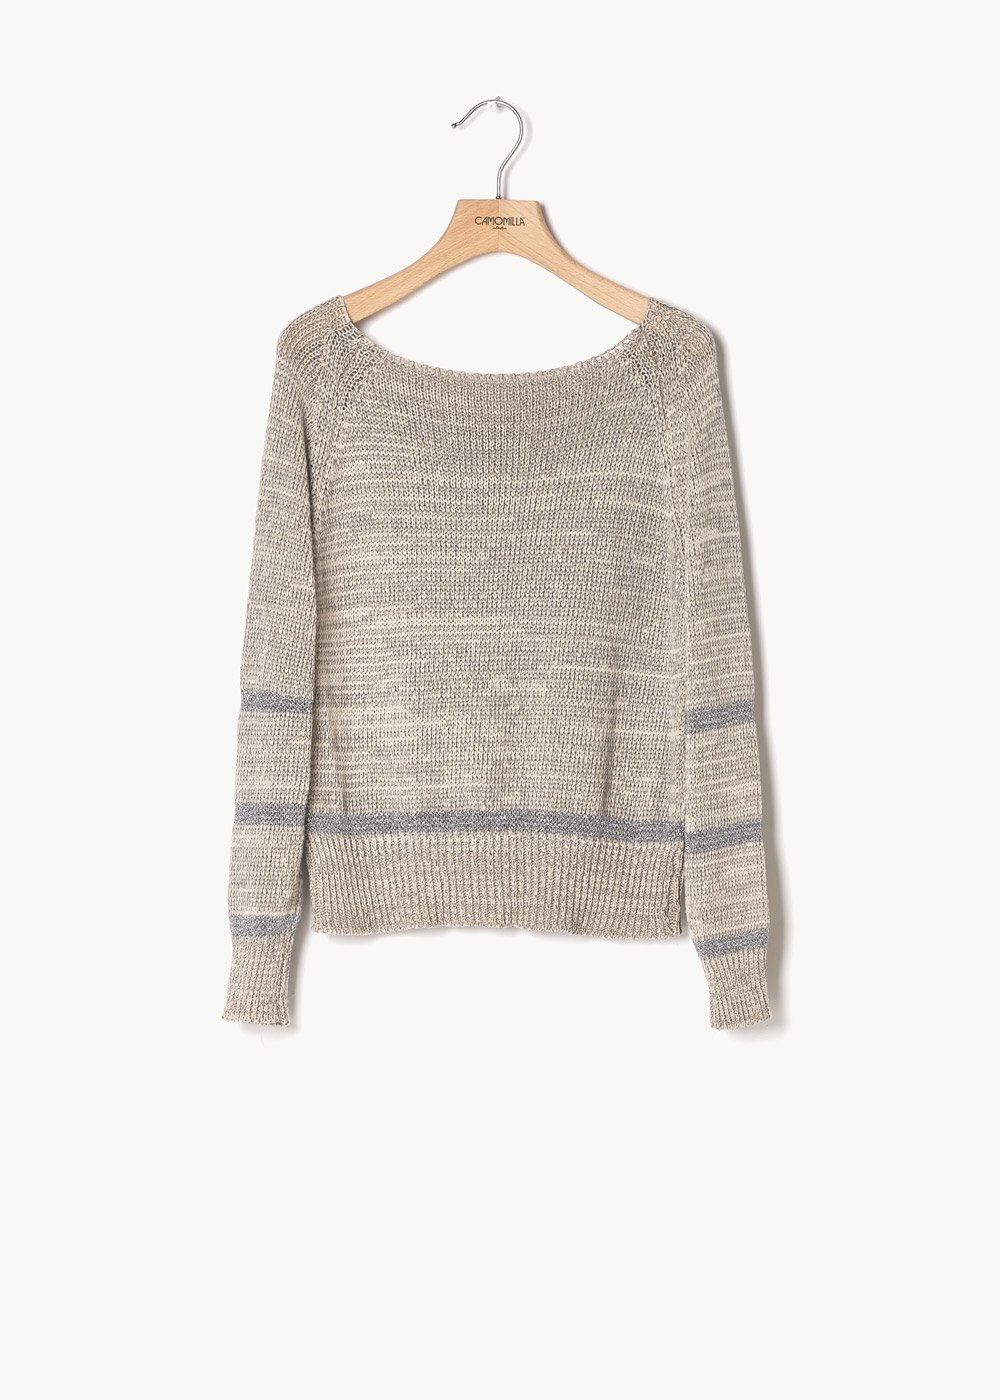 Miss cotton sweater with lurex hems at the bottom - Light Beige - Woman